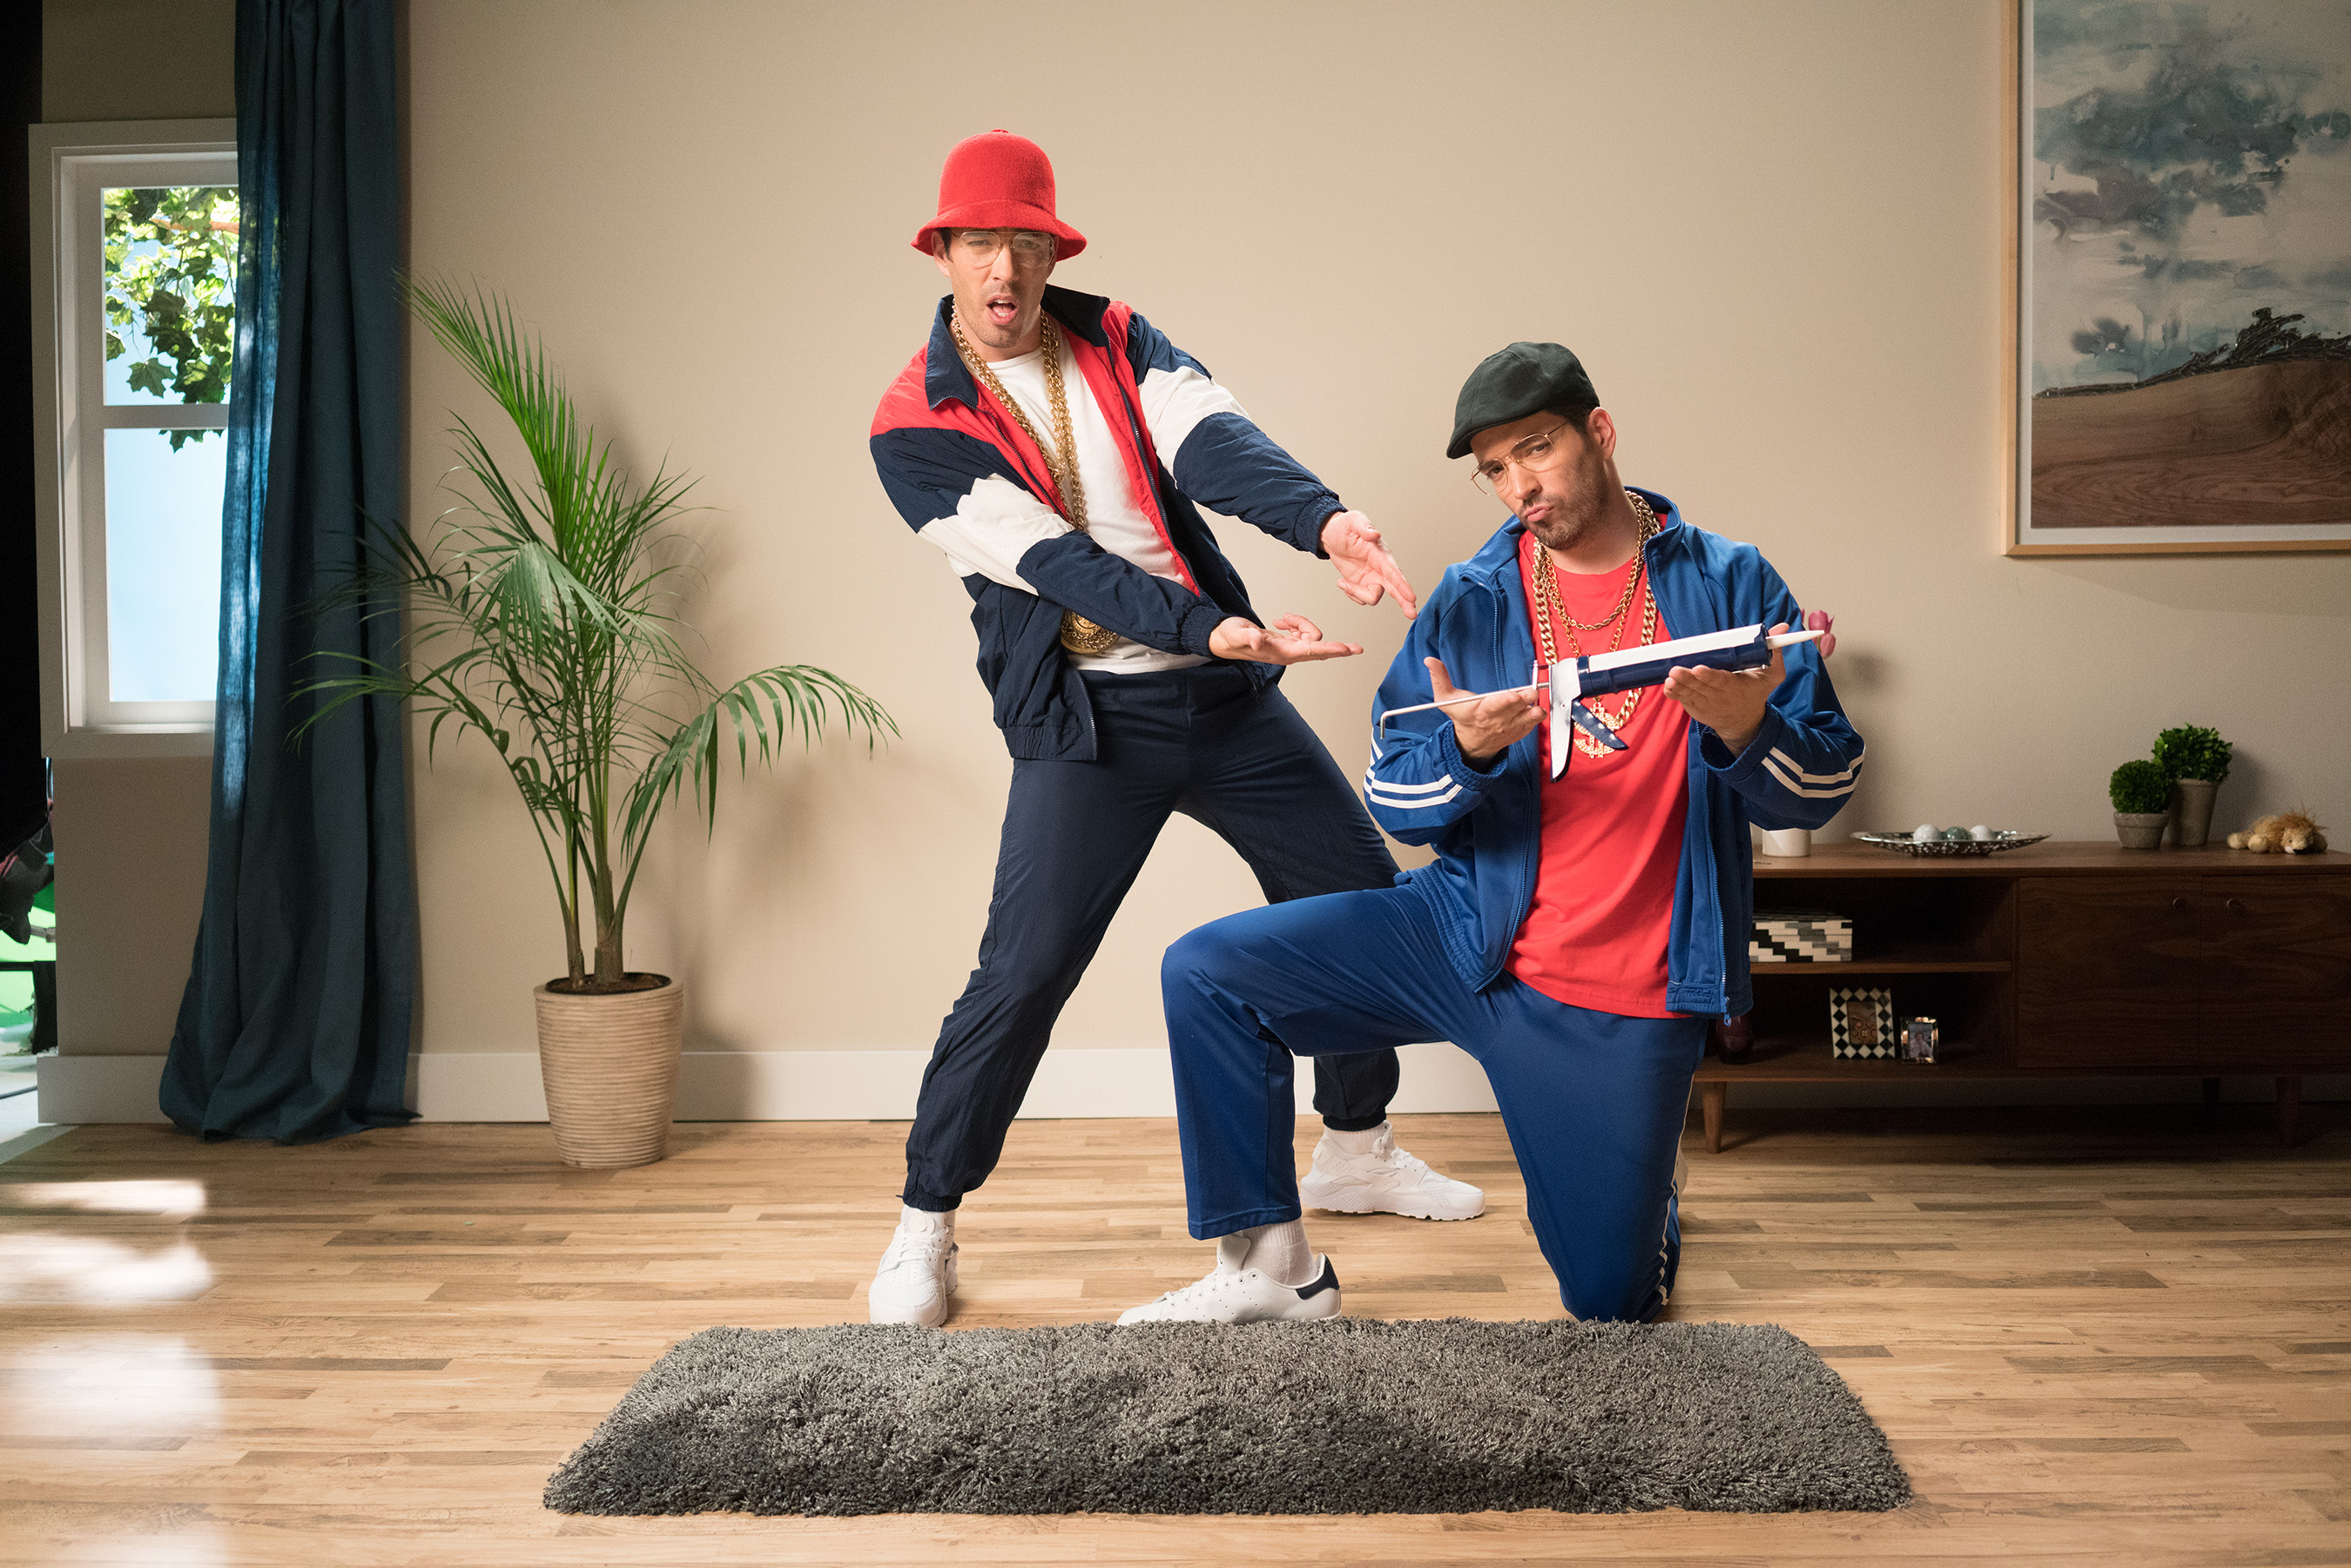 Sneak peek: The Scott Brothers rap about creating a no-slip rug in music video series.